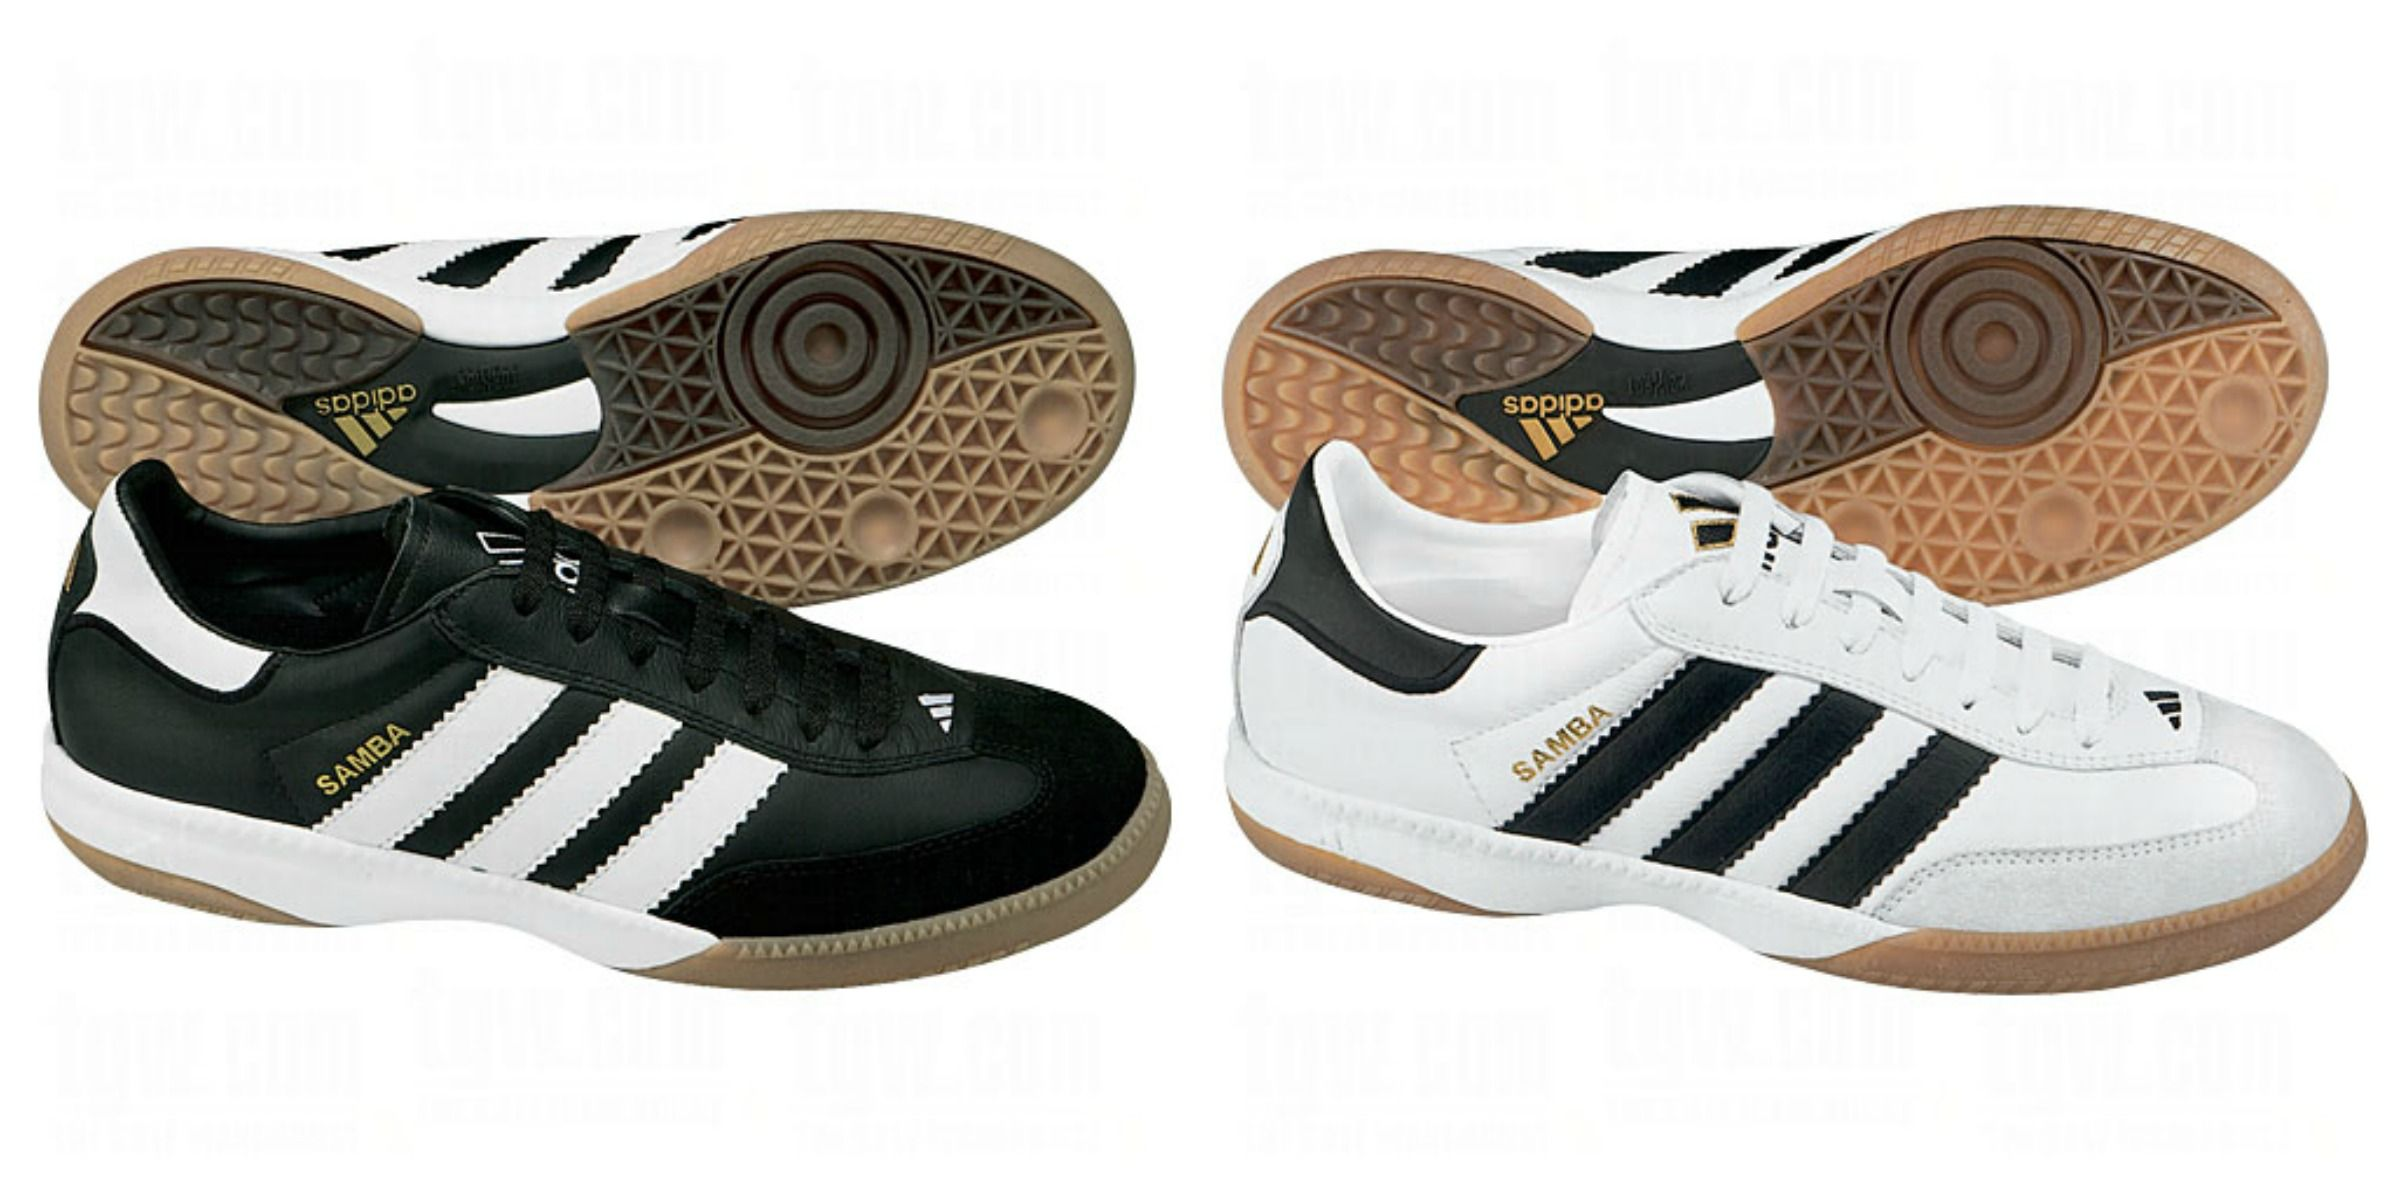 Zapatos Adidas Superstar II b77263 Research Management Office